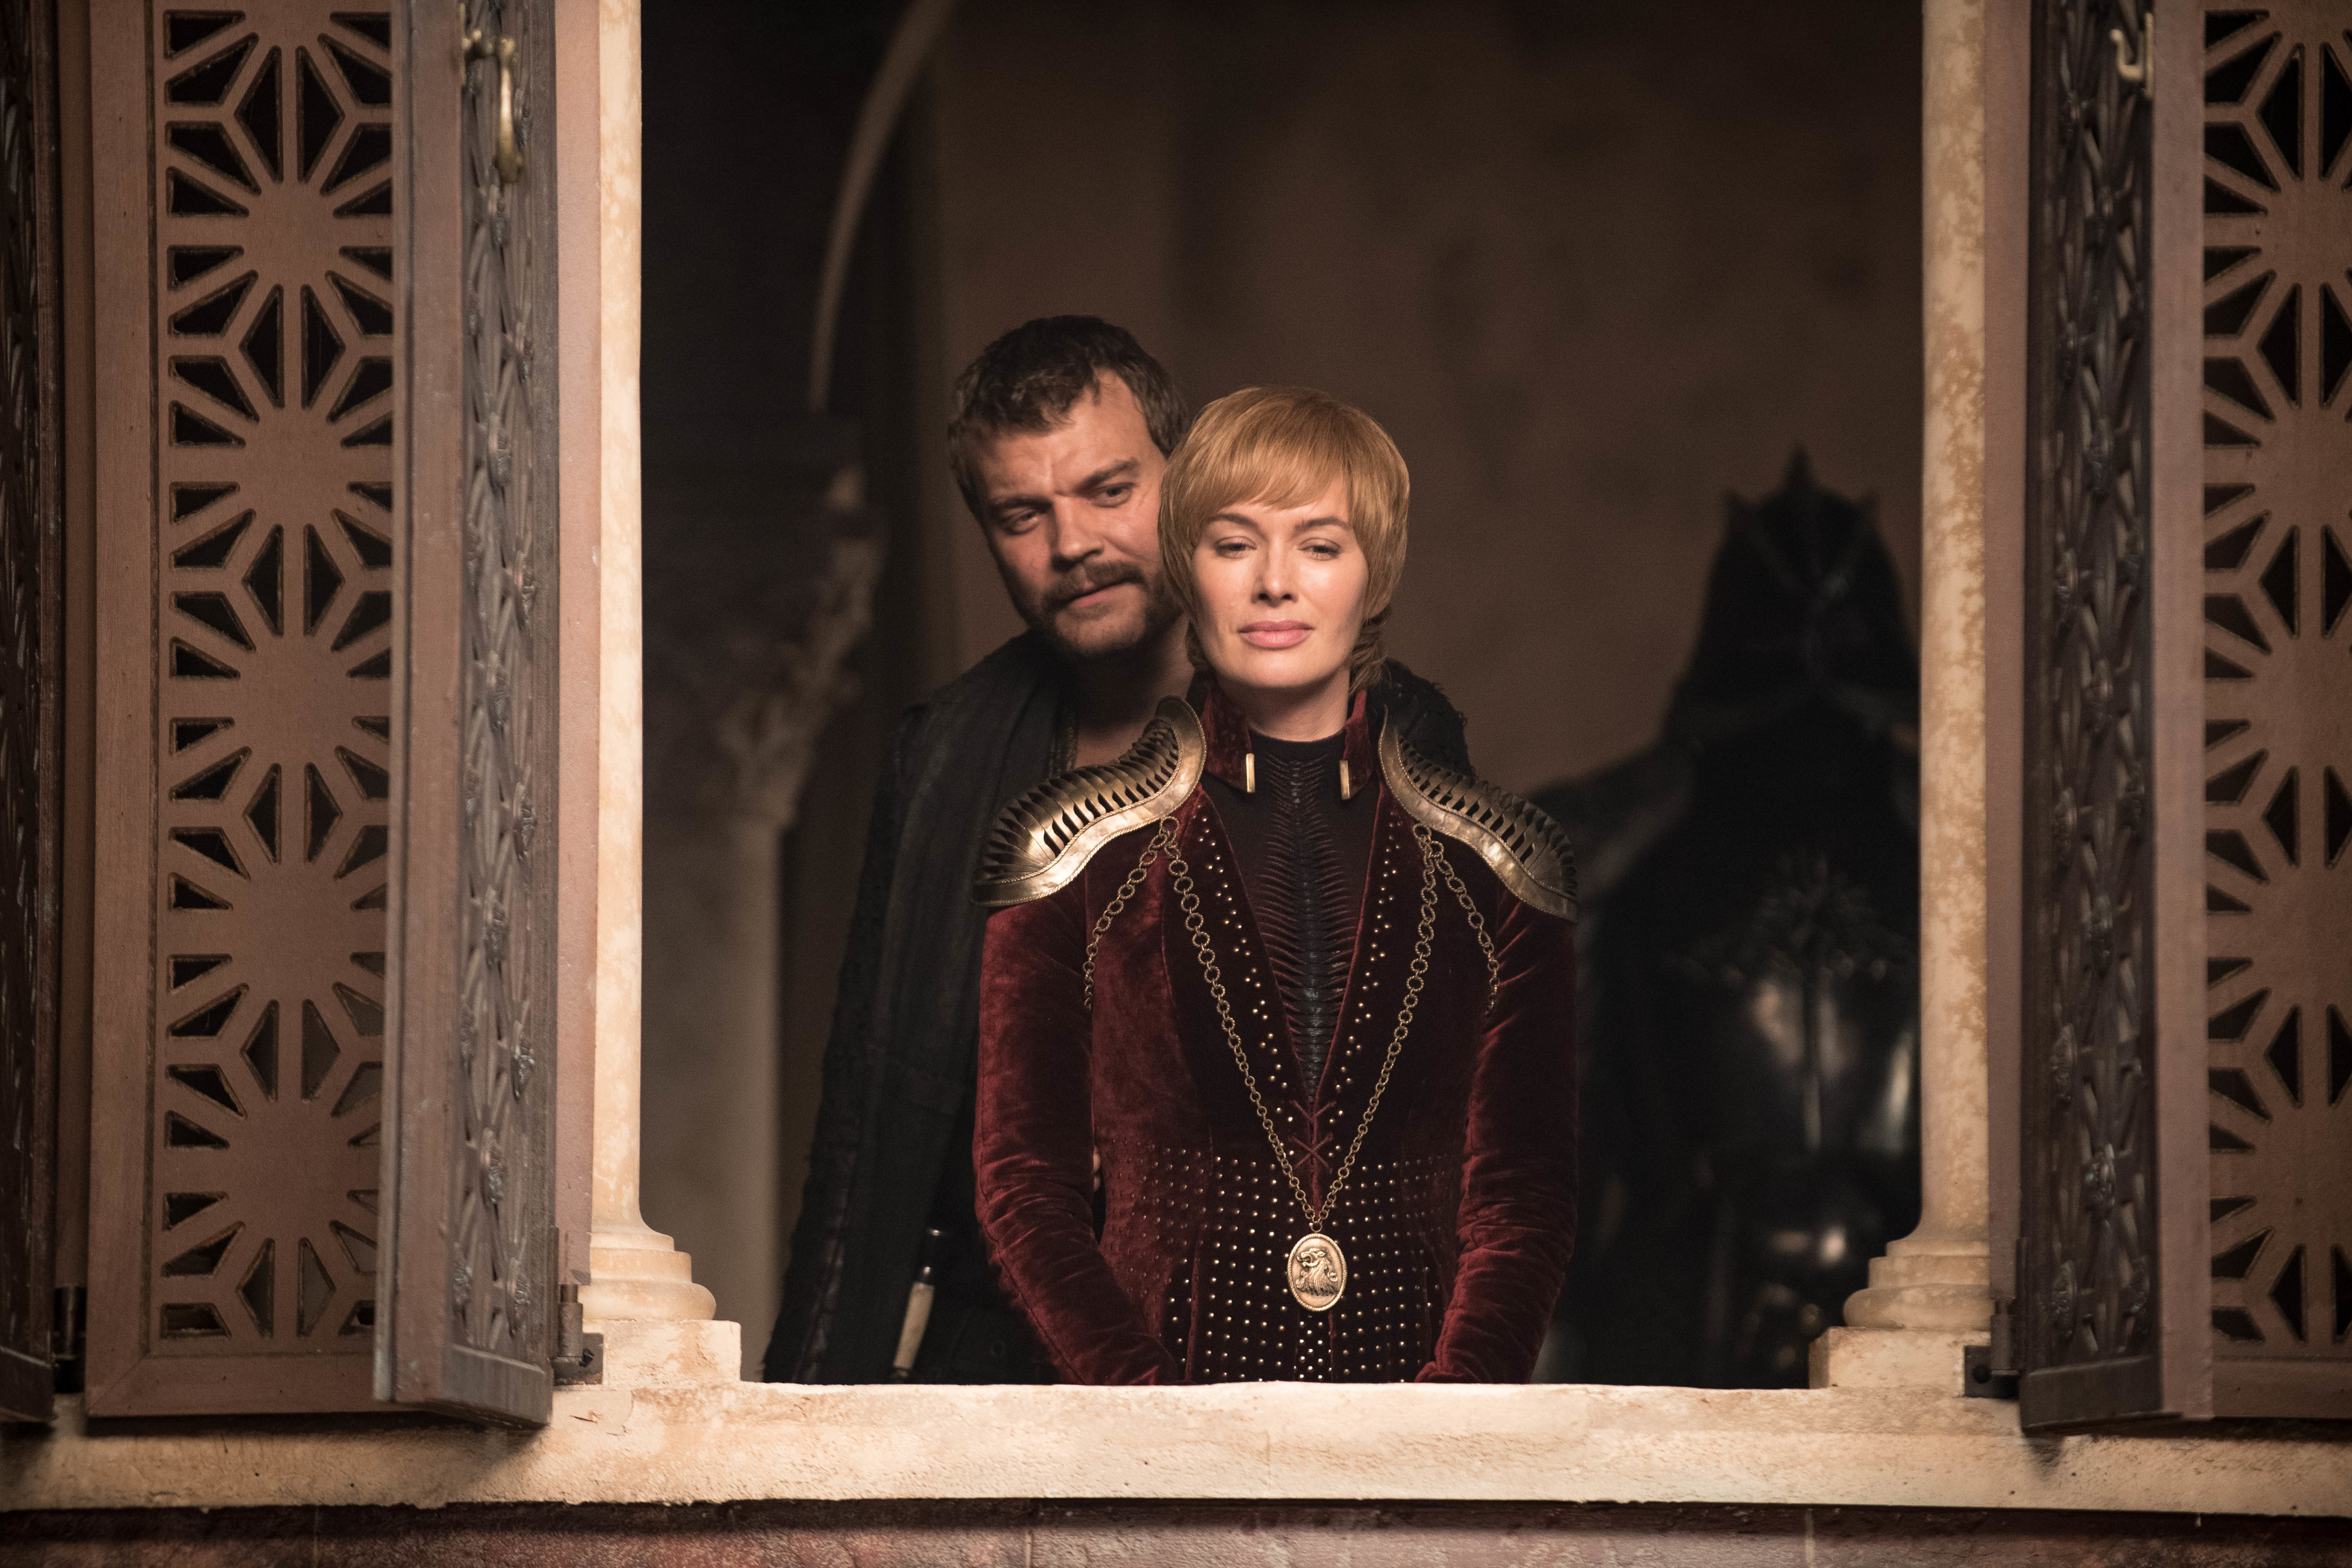 Pilou Asbæk as Euron Greyjoy and Lena Headey as Cersei Lannister.